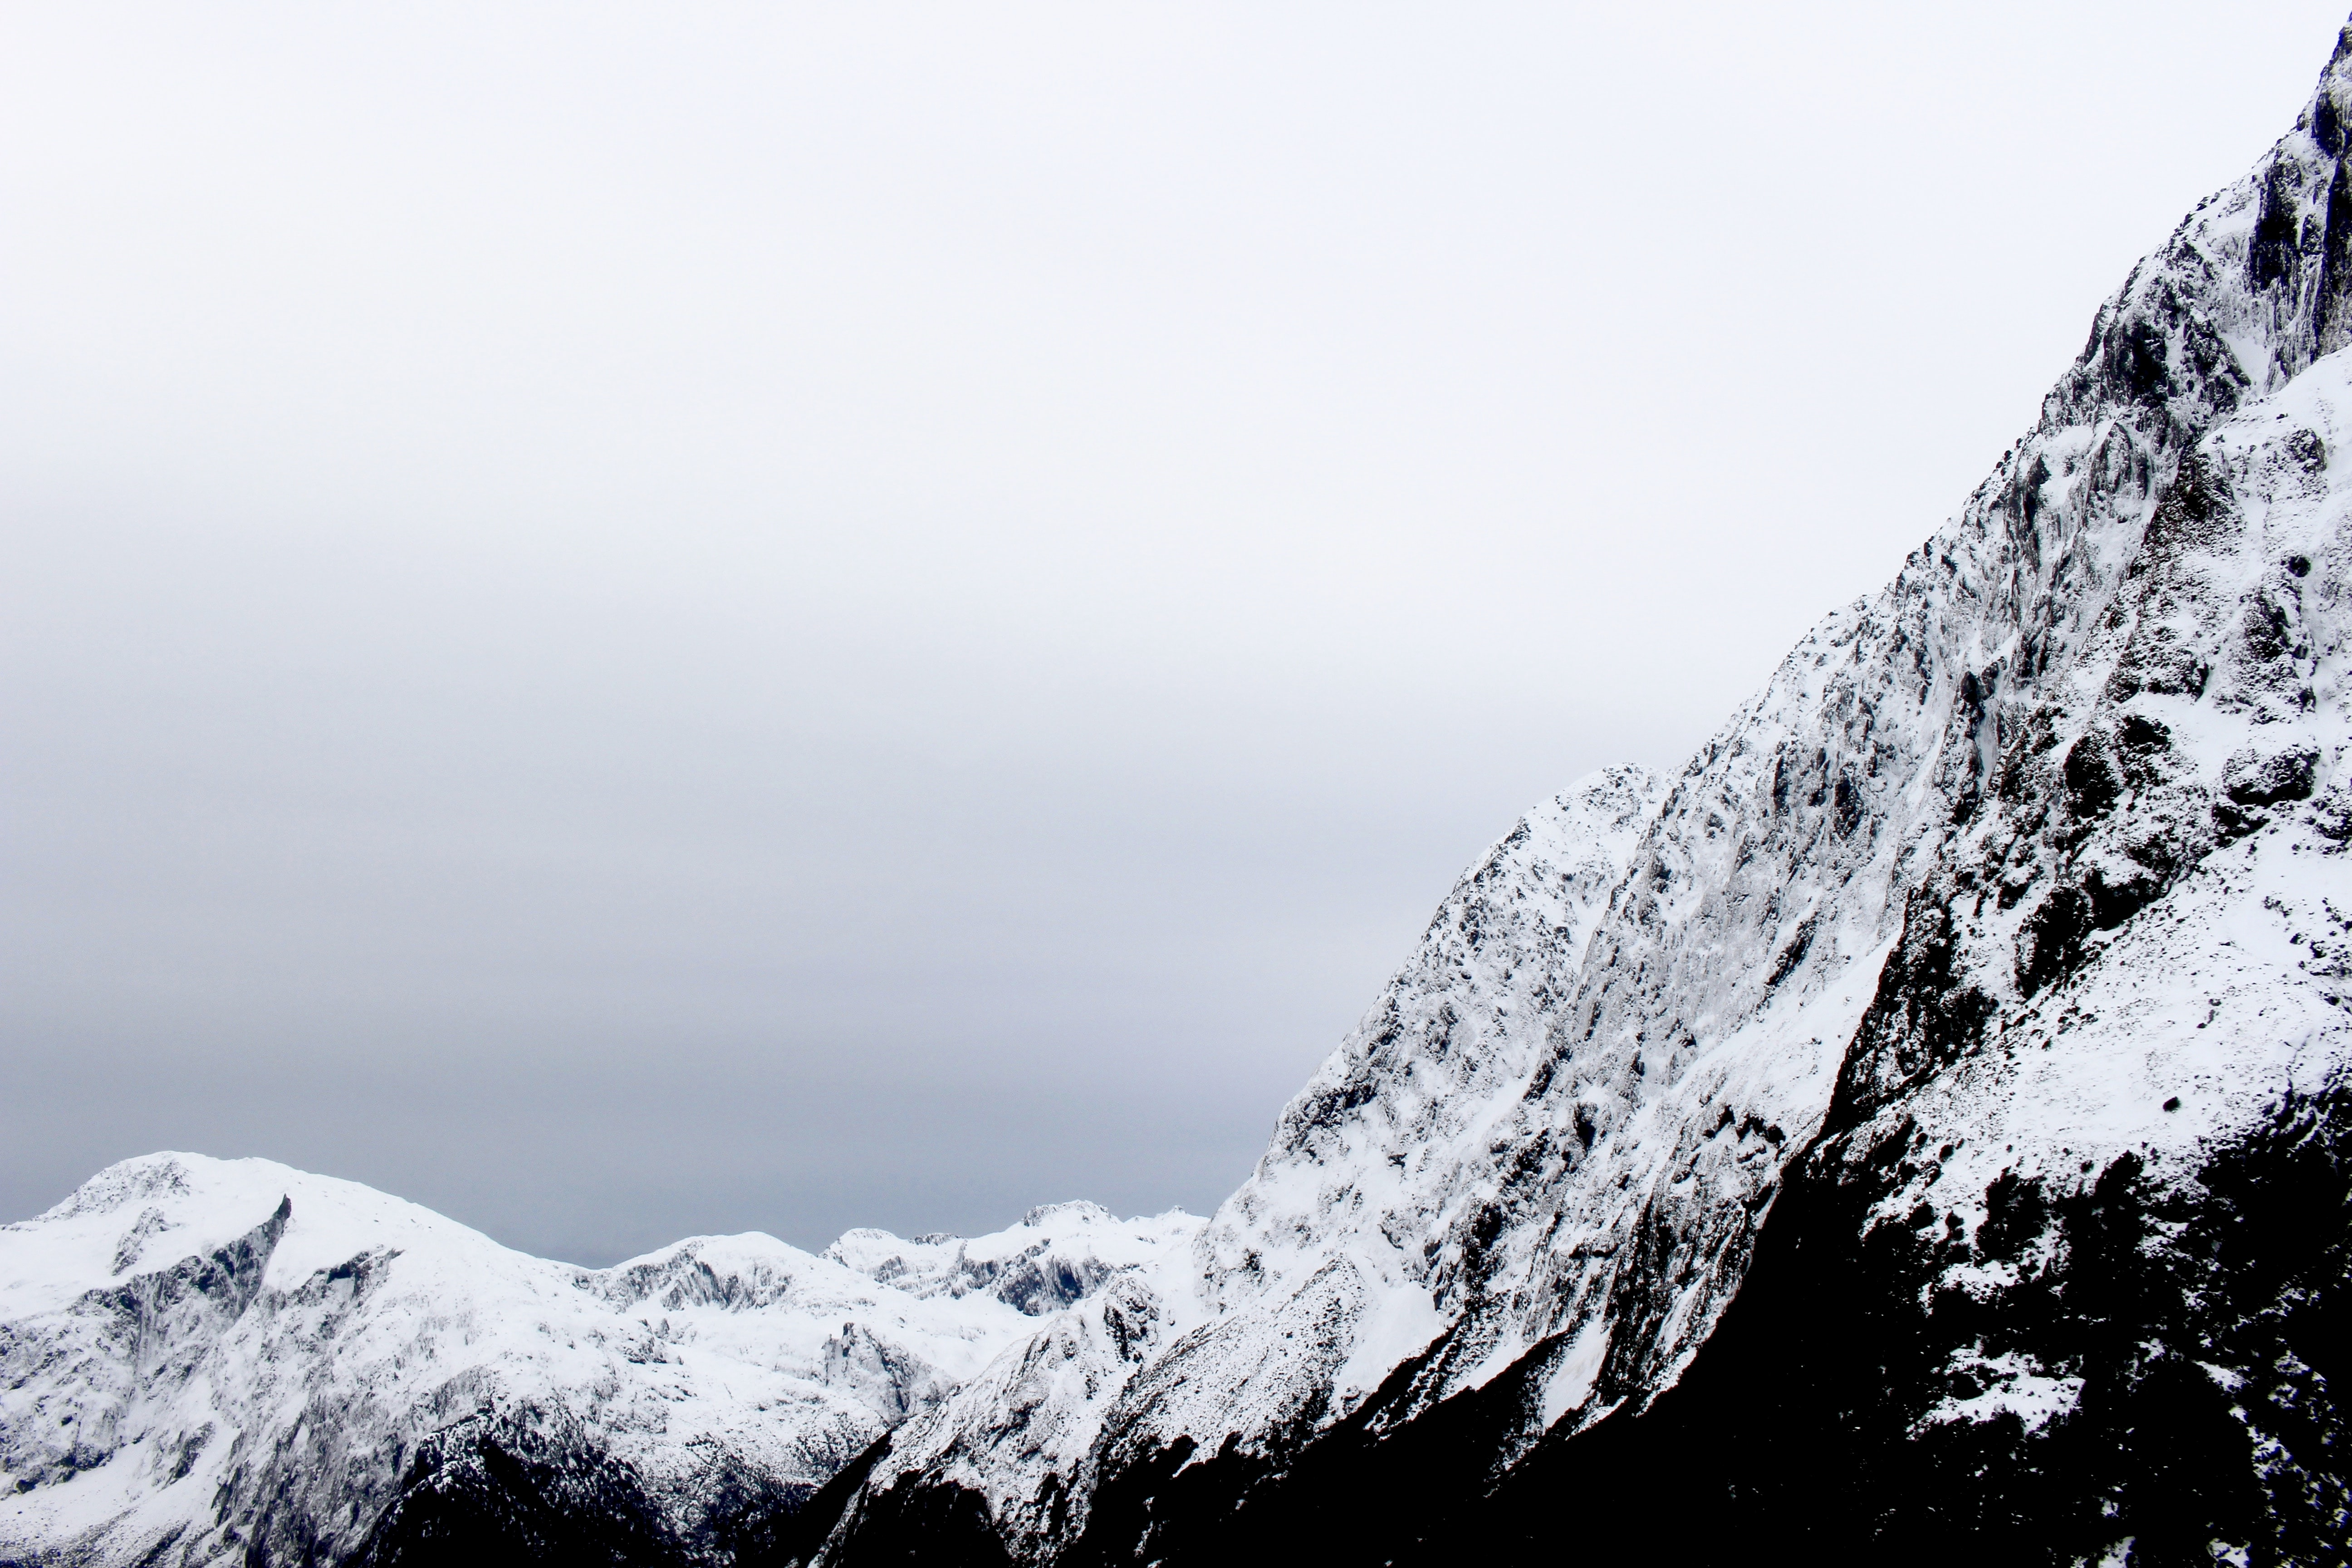 Mountain landscape with snow on a foggy day